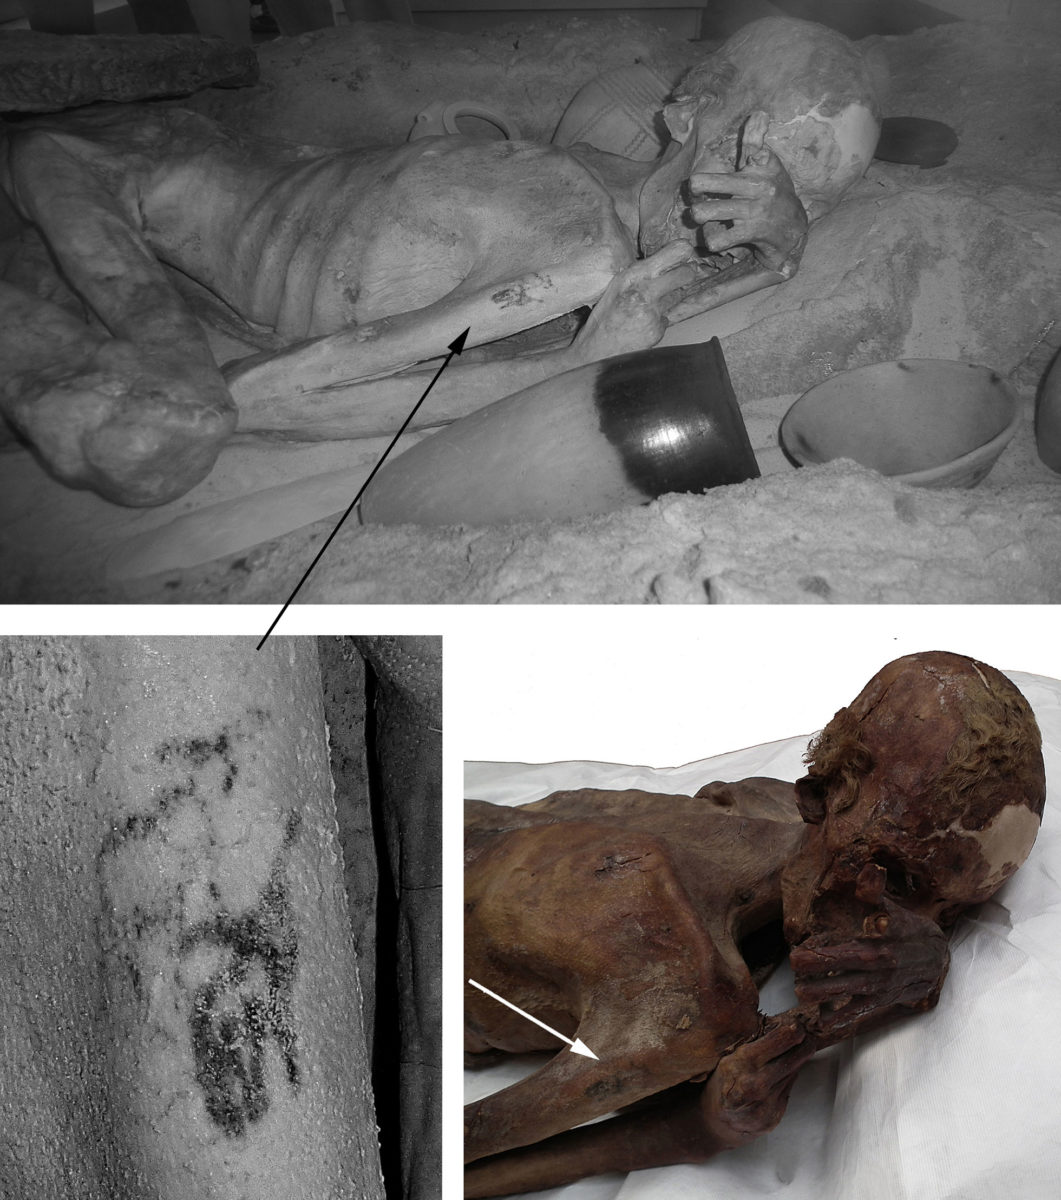 Top: Infrared image of the male mummy known as Gebelein Man A. Lower left: Detail of the tattoos observed on his right arm under infrared light. Lower right: The mummy and tattoos under normal lighting conditions.